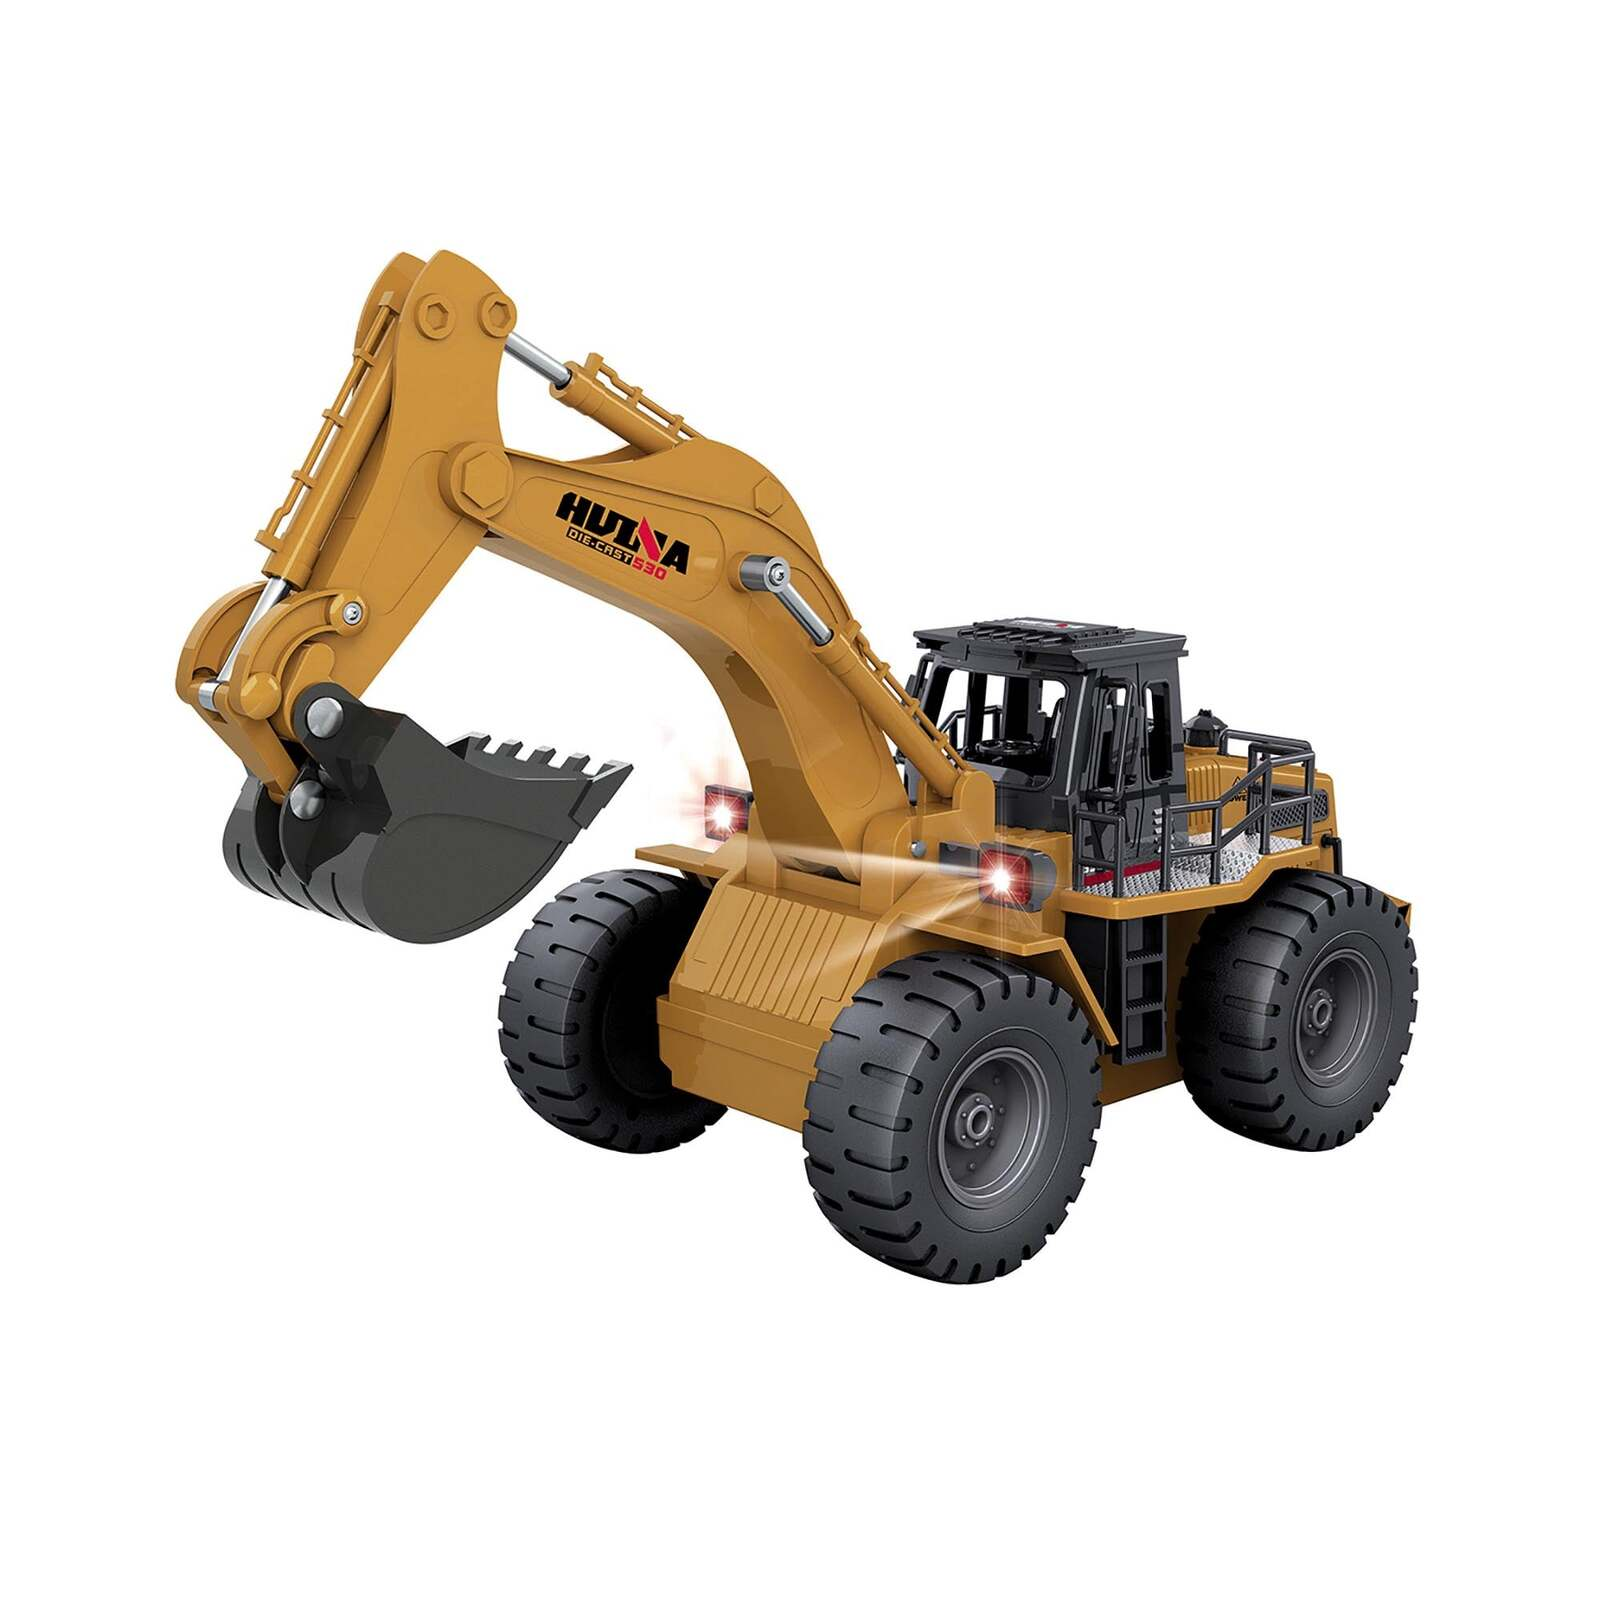 RC Toy Excavator with 6 Channel Remote